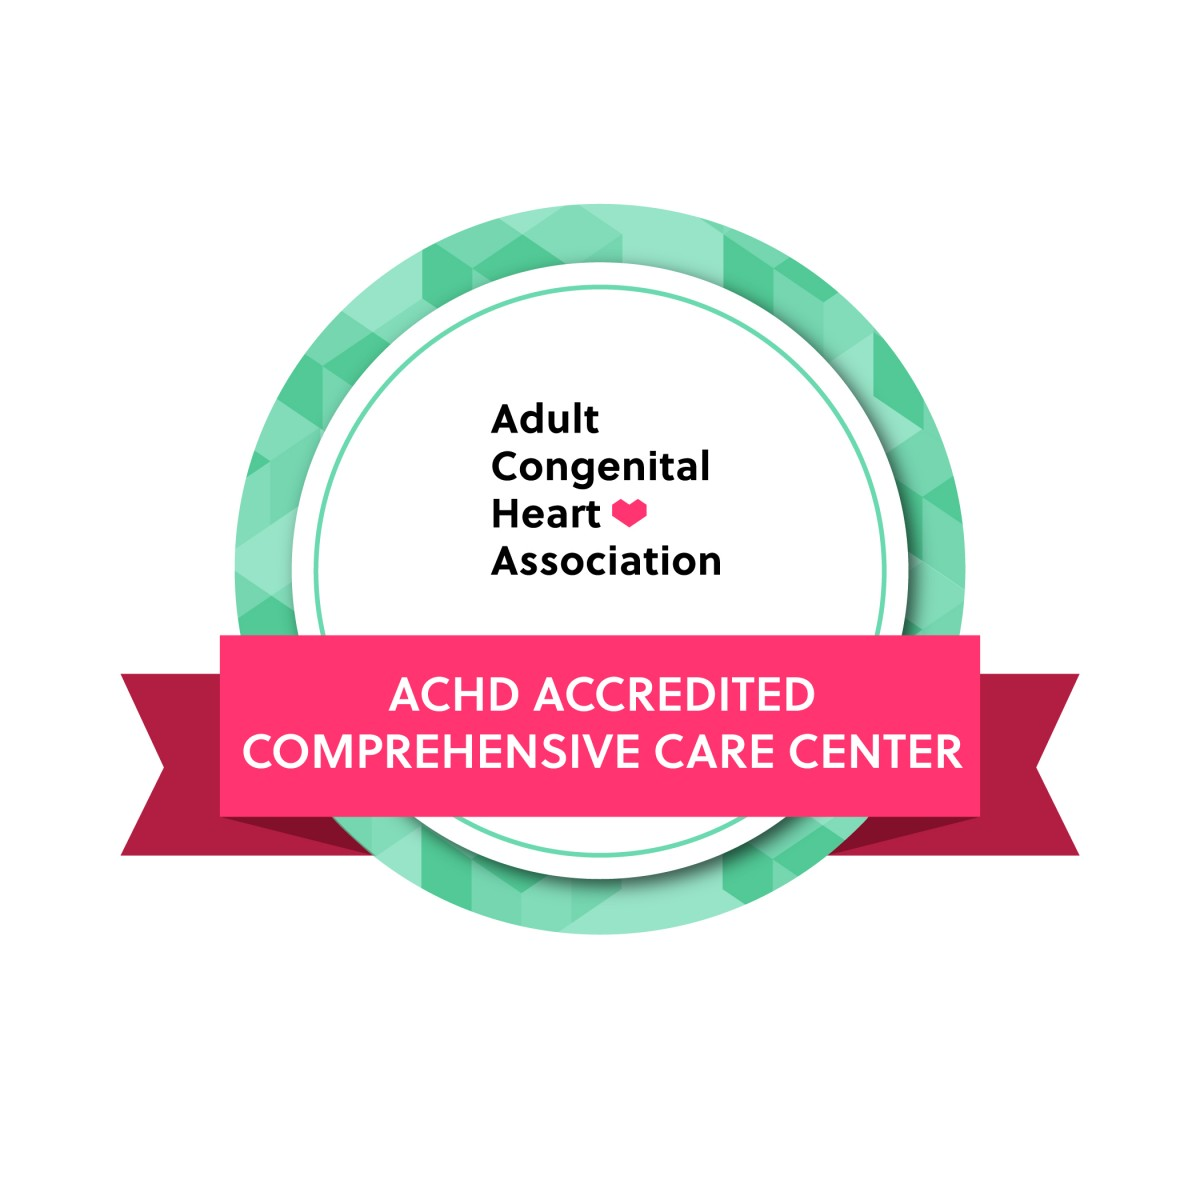 ACHA-Adult Congenital Heart Comprehensive-Care-Center